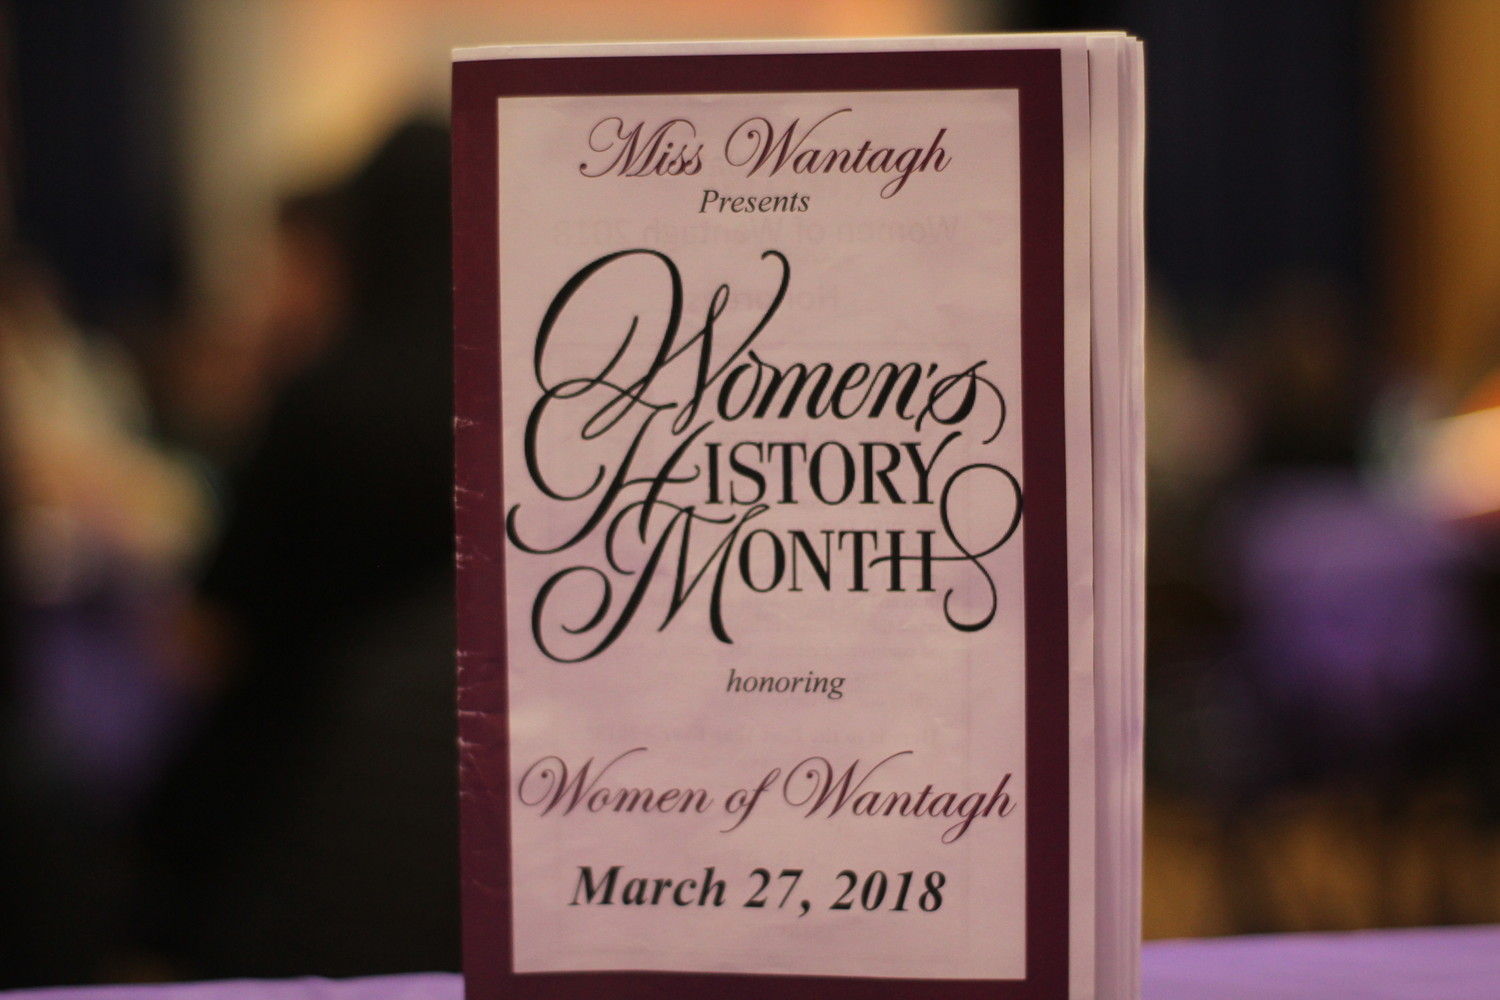 This year's Women of Wantagh ceremony took place on March 27 at the Wantagh Elementary School gymnasium. The Miss Wantagh court mothers helped coordinator Ella Stevens set the event up through dessert baking and decorating the event space.